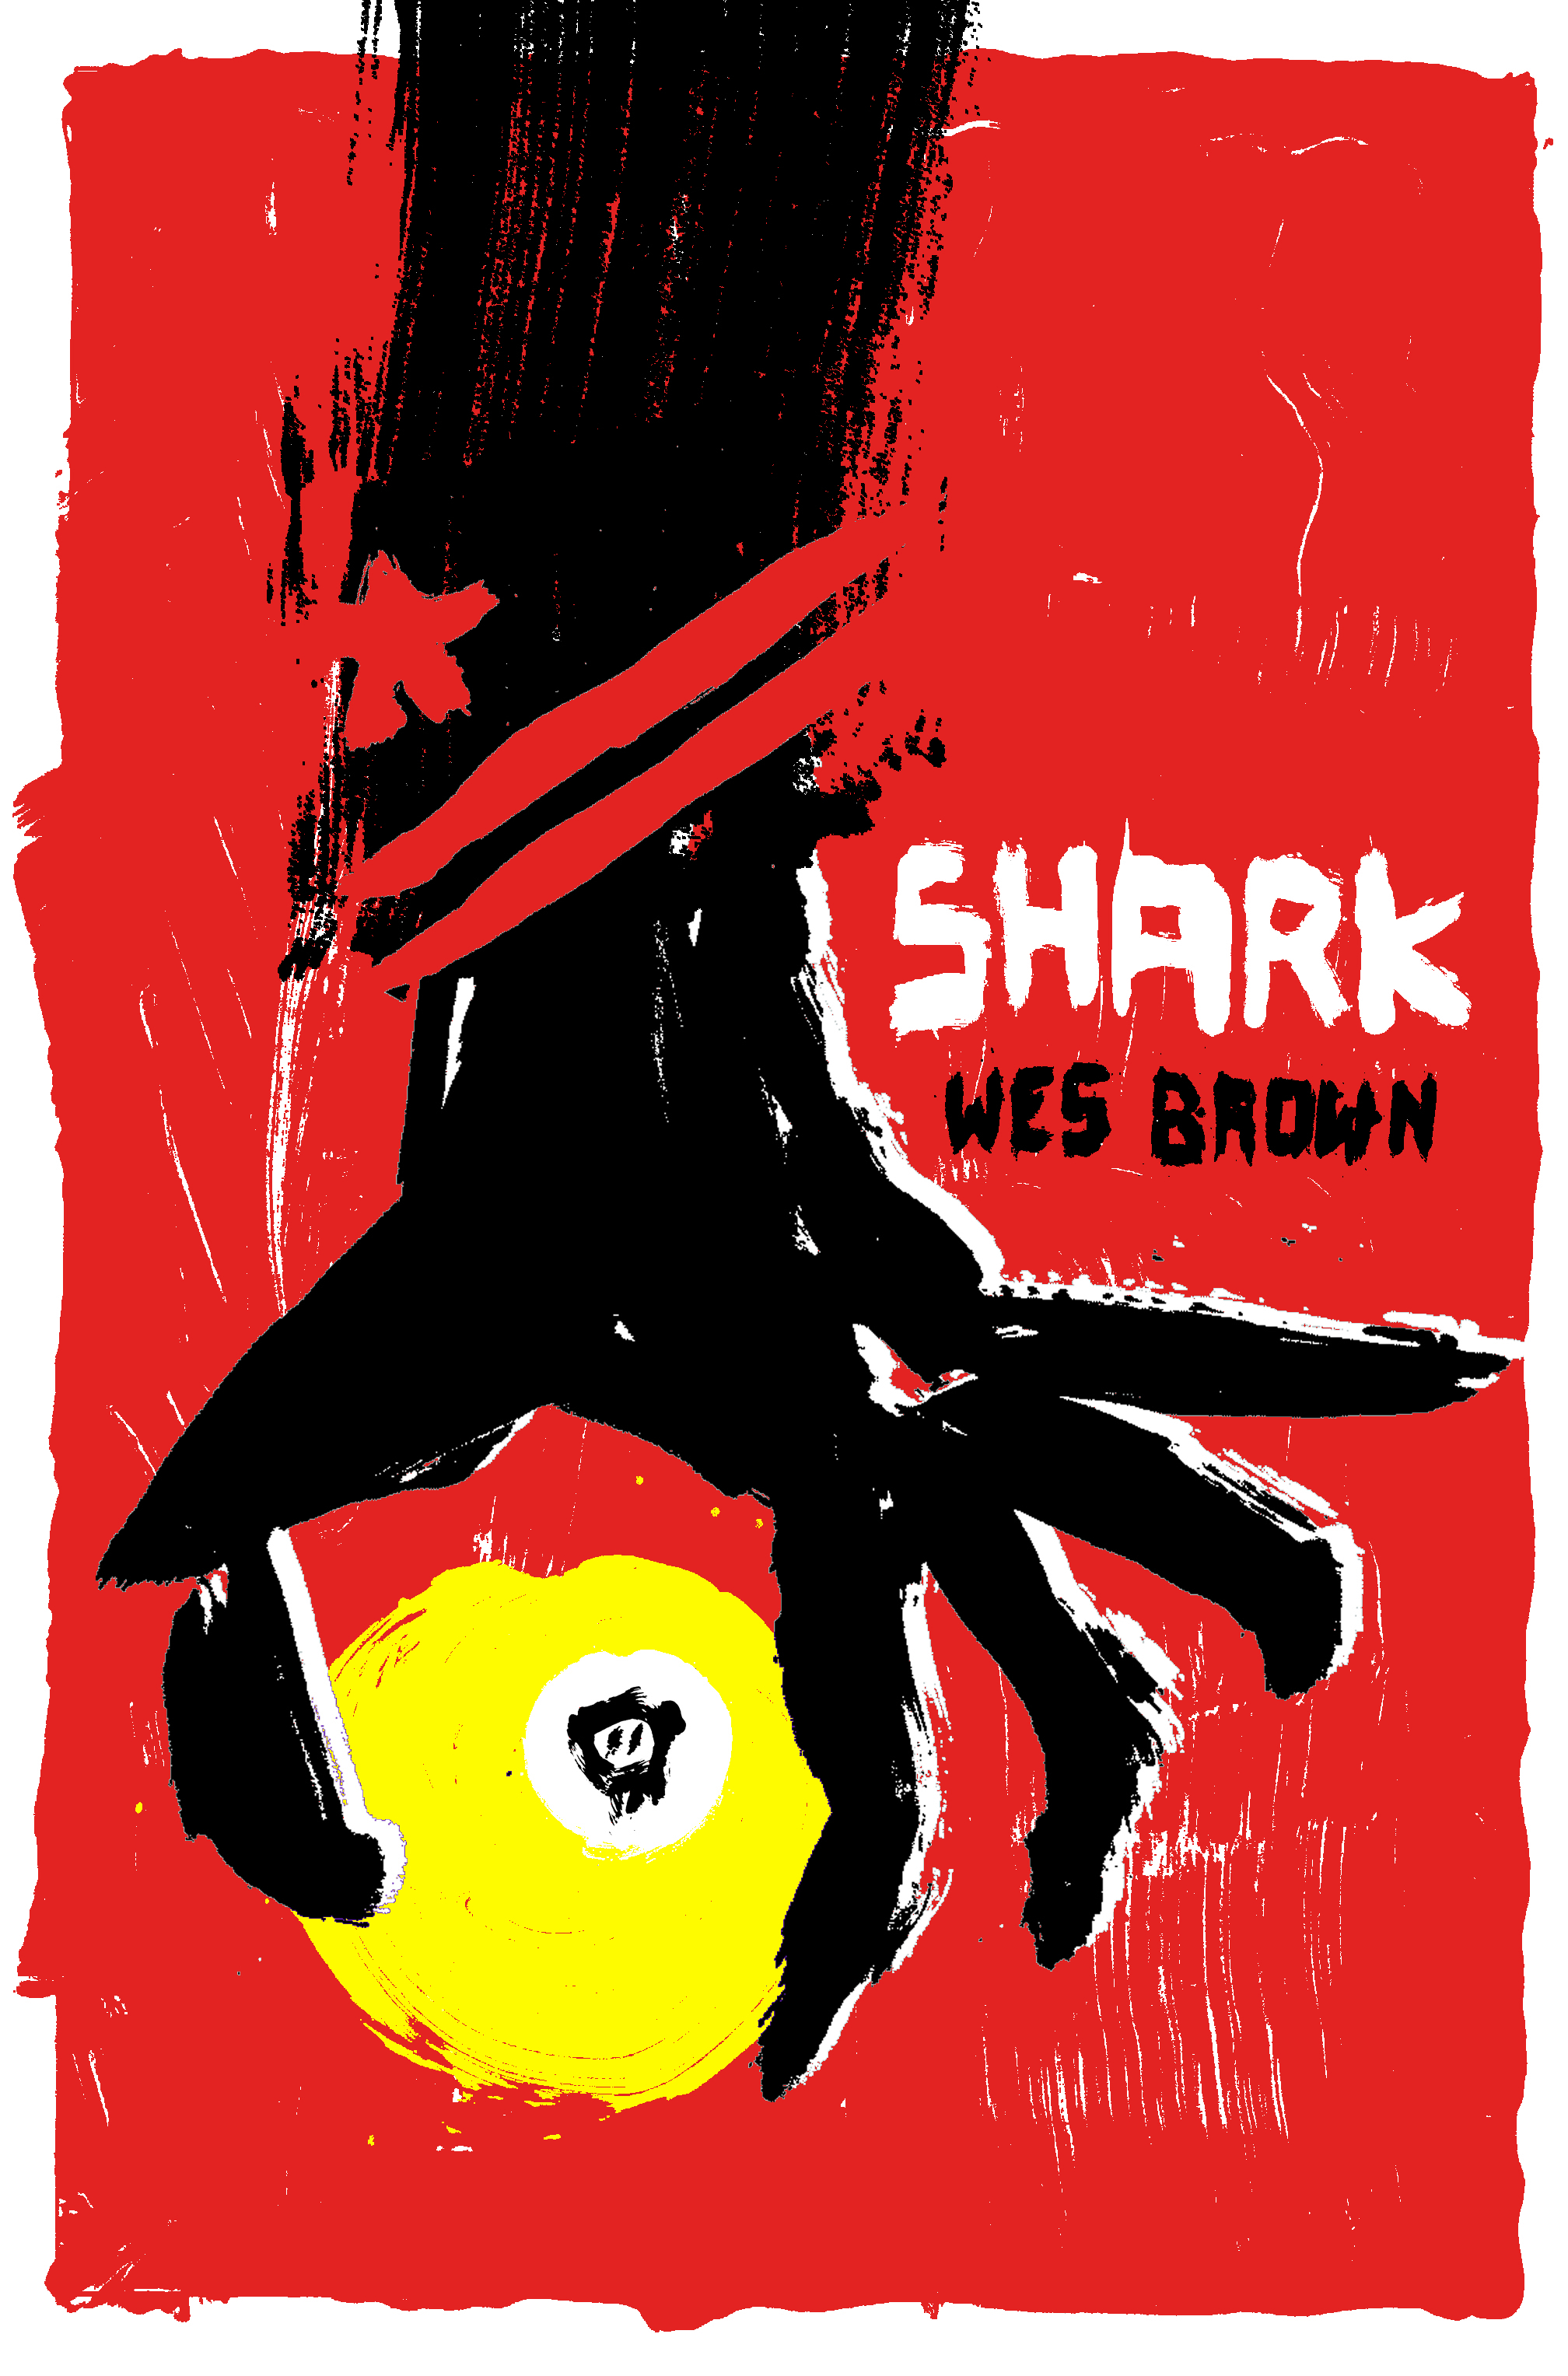 Shark by Wes Brown